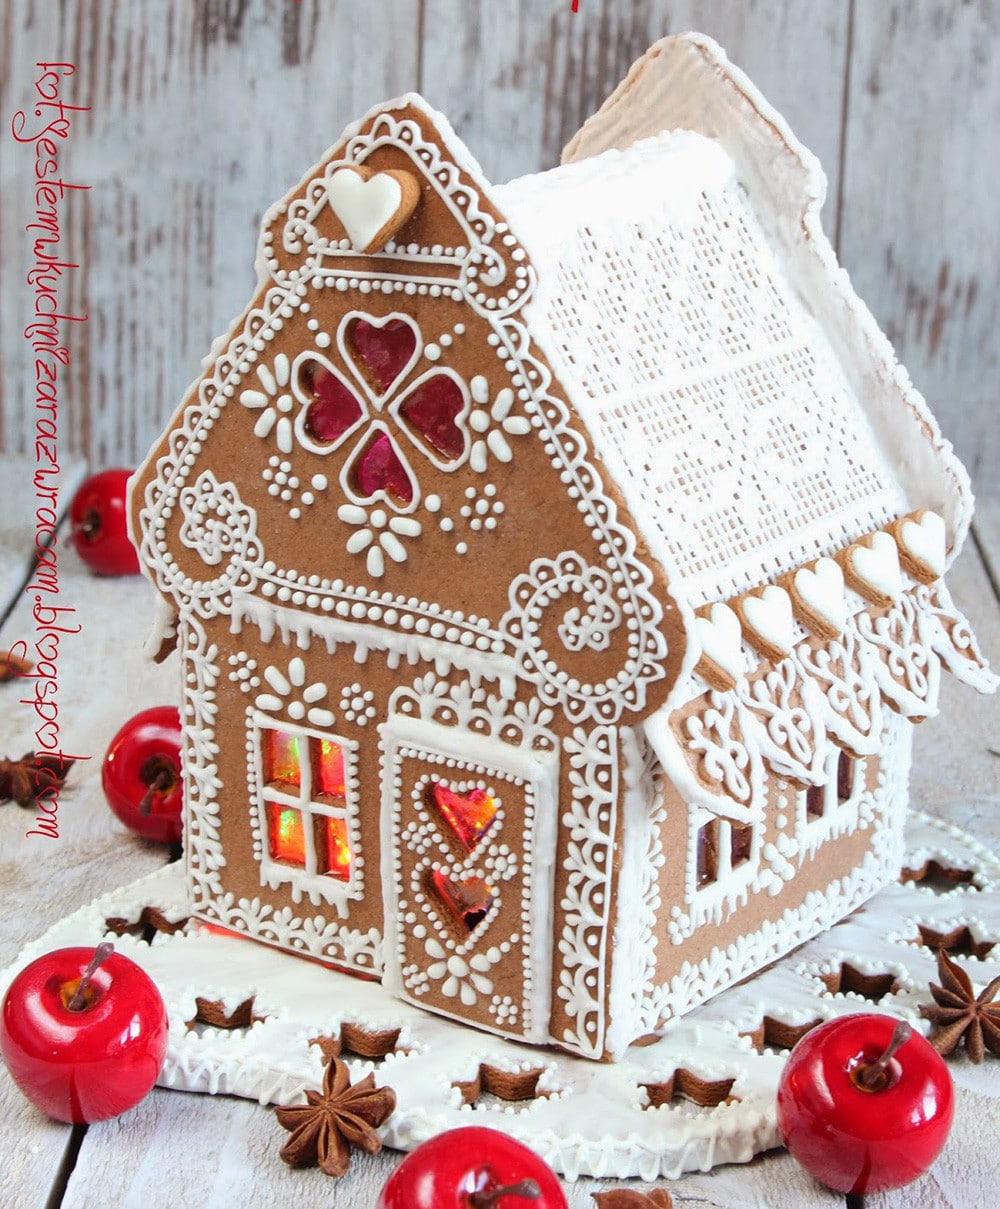 What a beautiful gingerbread house! Delicate royal icing piping and melted sugar windows. So elegant